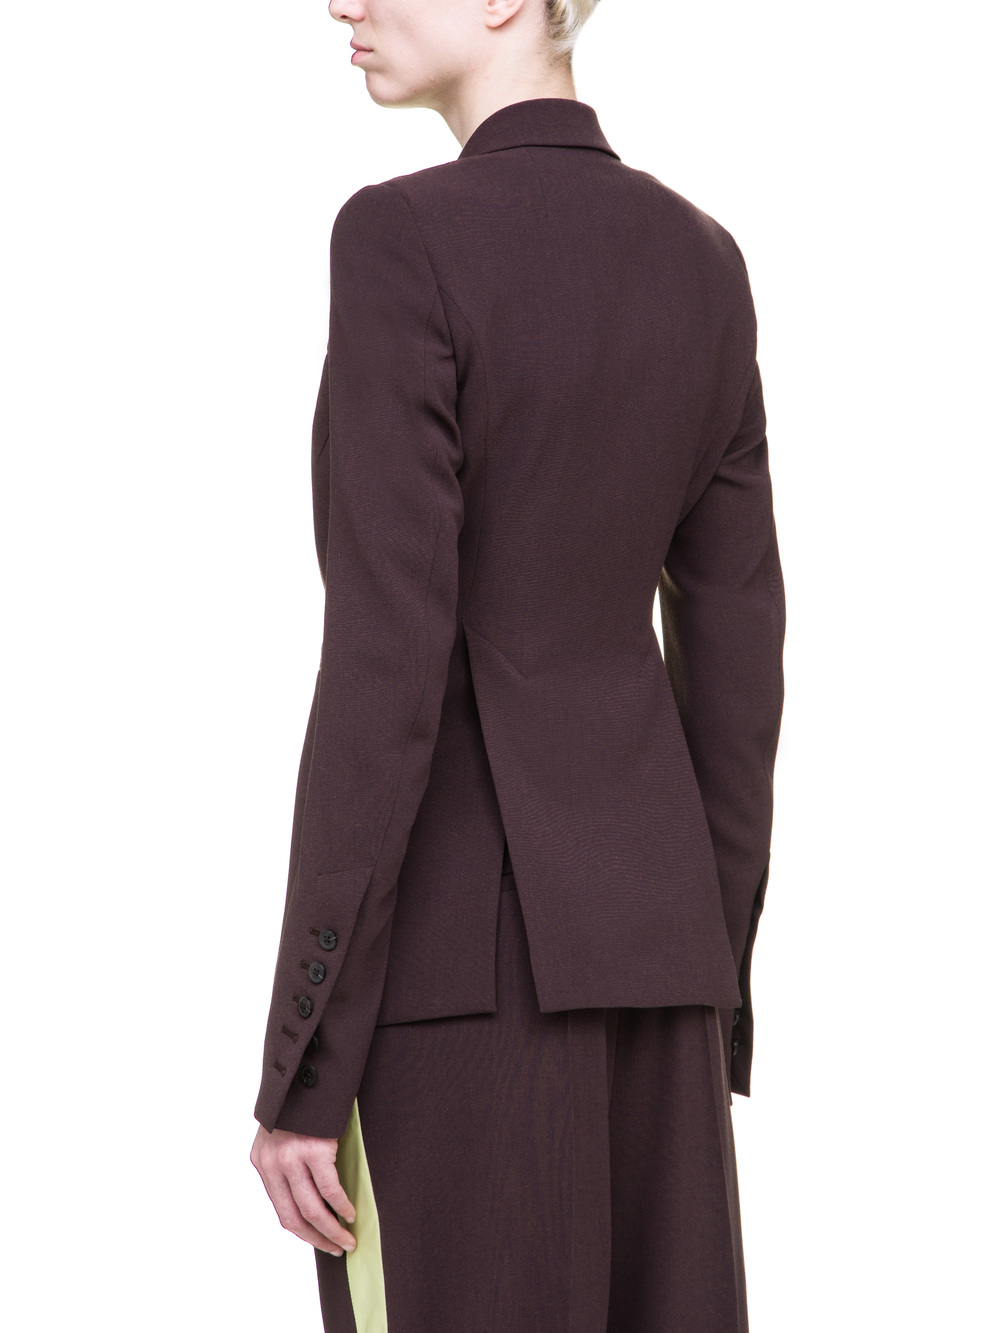 RICK OWENS SOFT SHORT BLAZER IN RAISIN PURPLE LIGHT CREPE WOOL